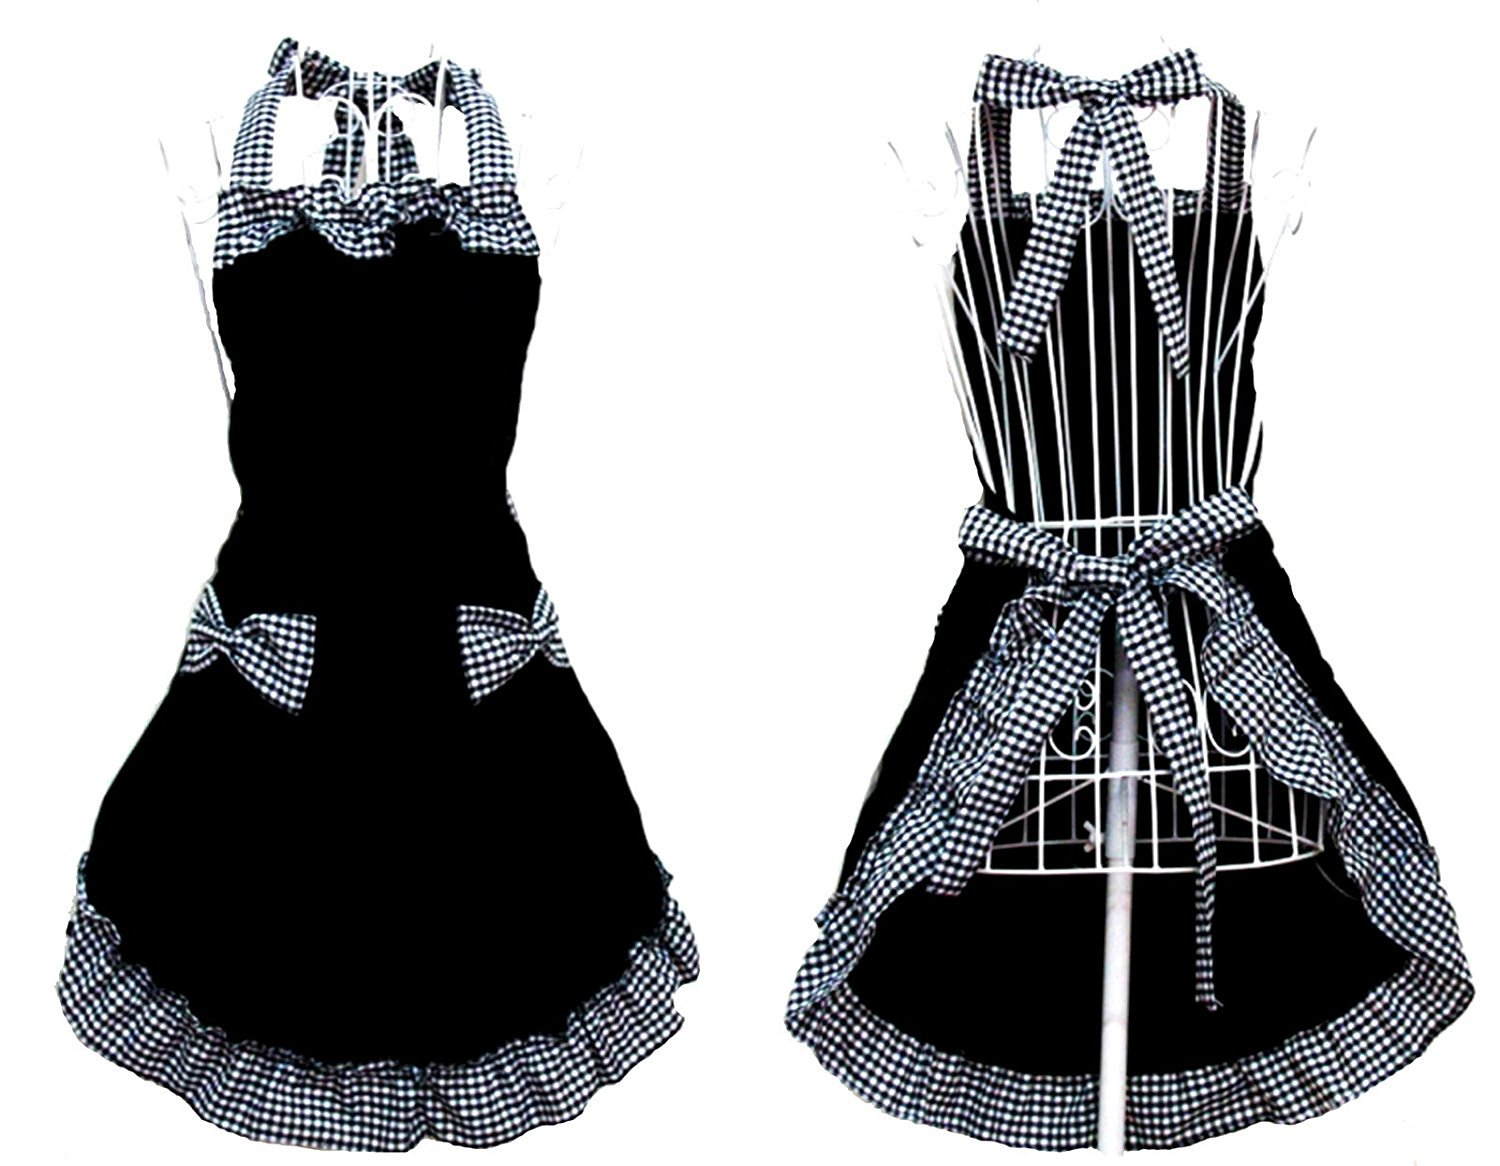 Hyzrz Cute Retro Lovely Vintage Lady's Kitchen Fashion Flirty Women's Aprons with Pockets Black Patterns for Mother's Day Gift NA